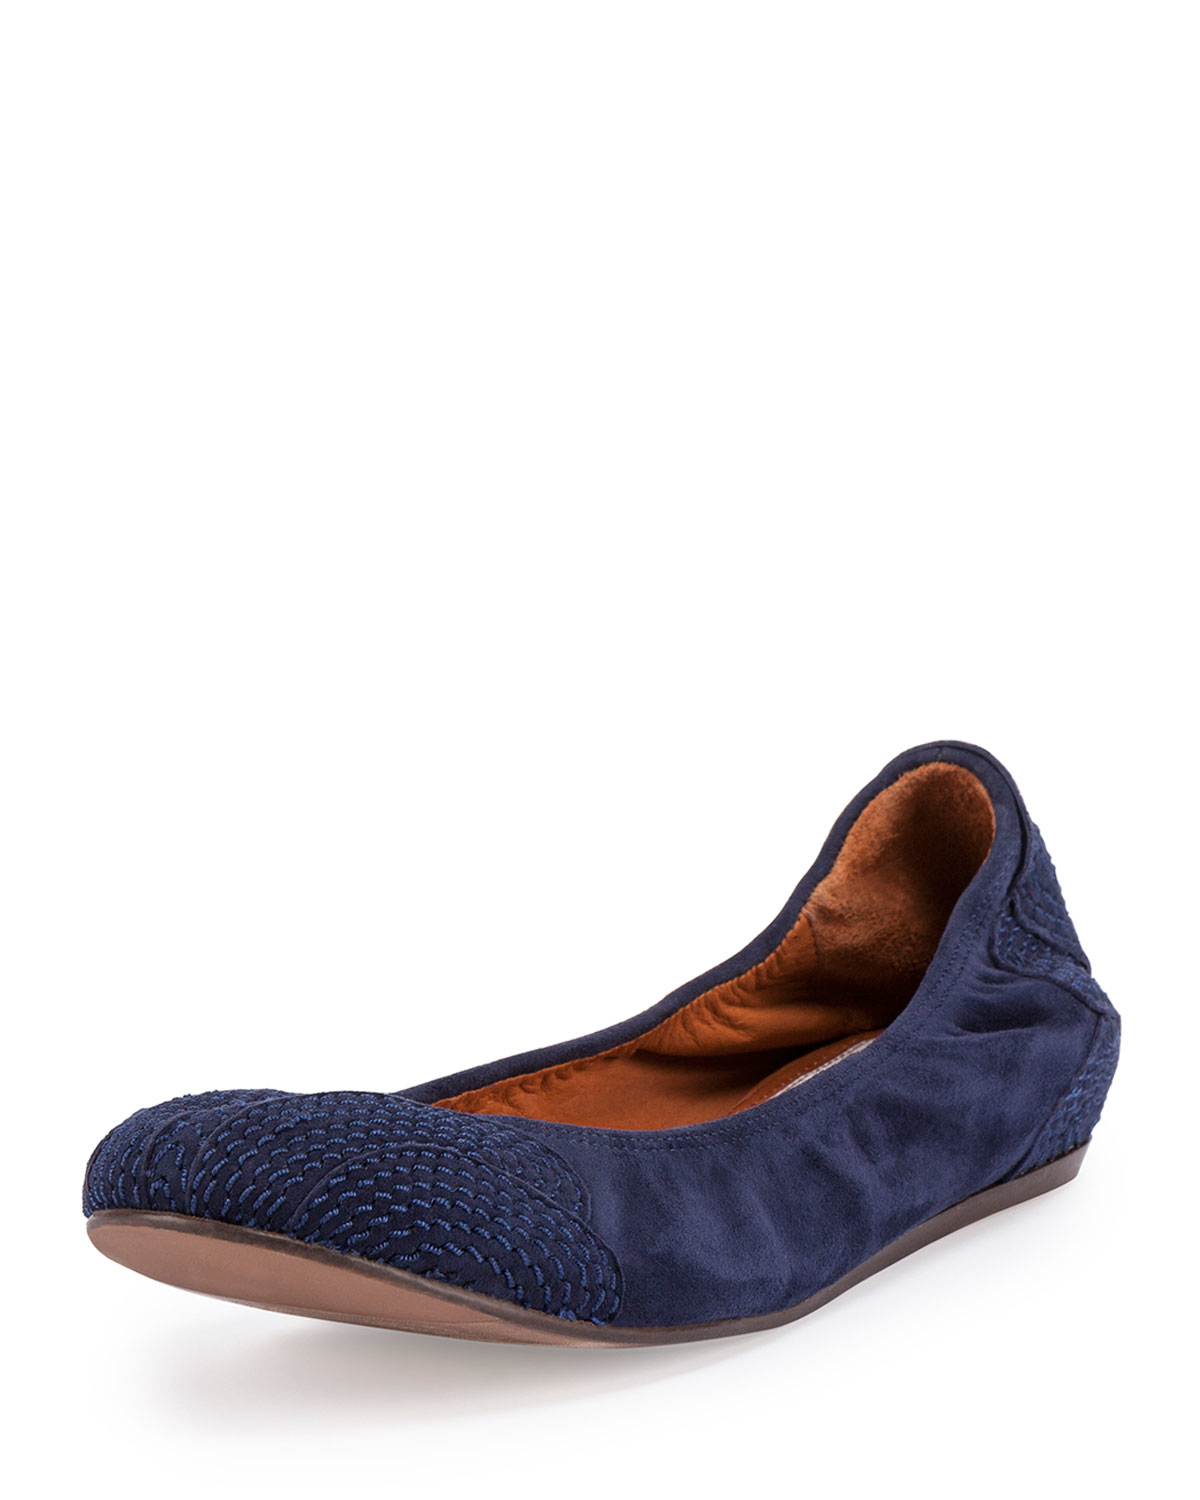 California Navy Tieks embody the luxurious, yet laid-back, California lifestyle. From a day strolling the pier to a night on the town, this deep blue neutral is a sophisticated finish to any ensemble.